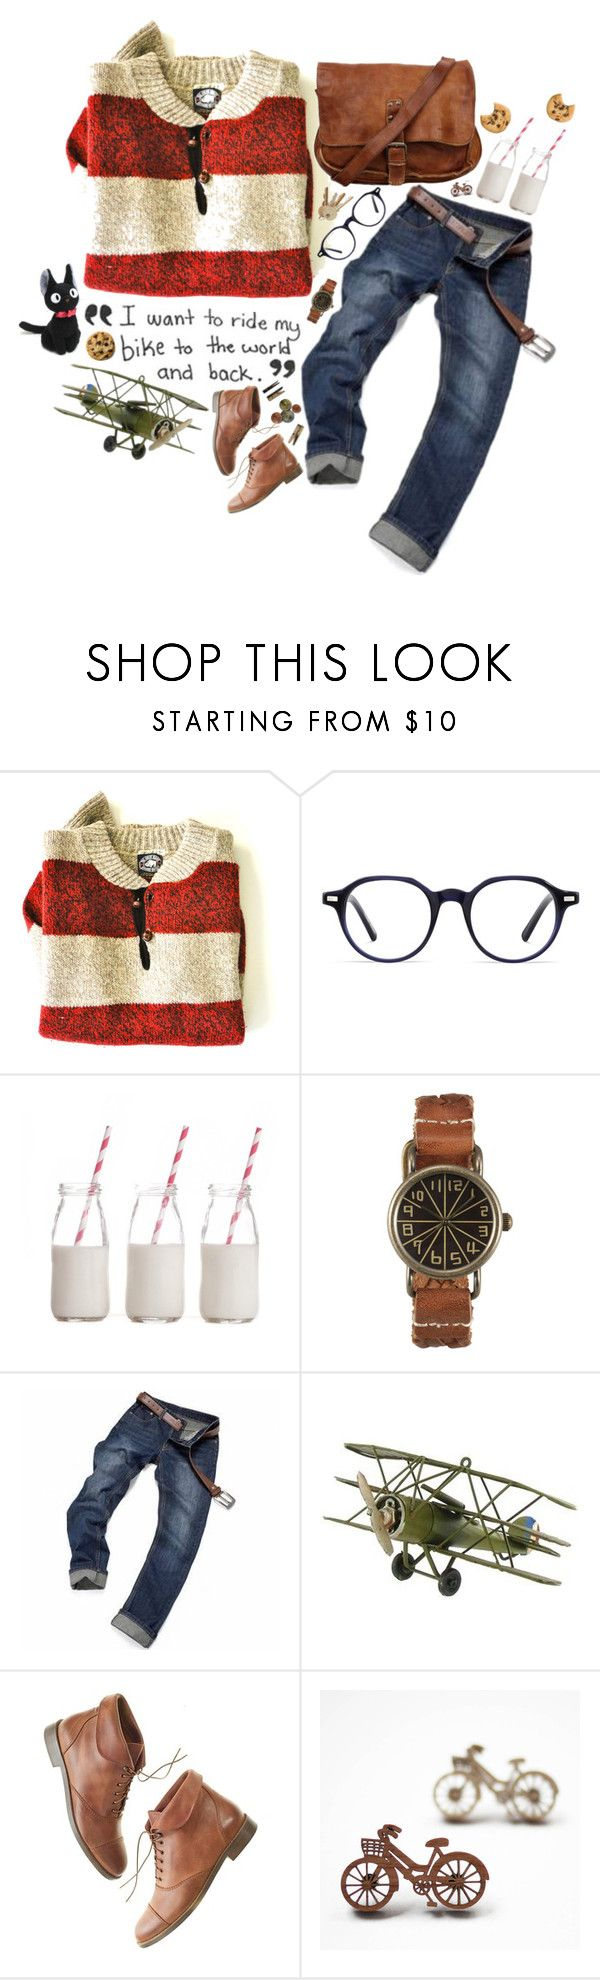 """Tombo from Kiki's Delivery Service"" by hannahhnd ❤ liked on Polyvore featuring Great Plains, Warby Parker, Dress My Cupcake, Laundry and Madewell"